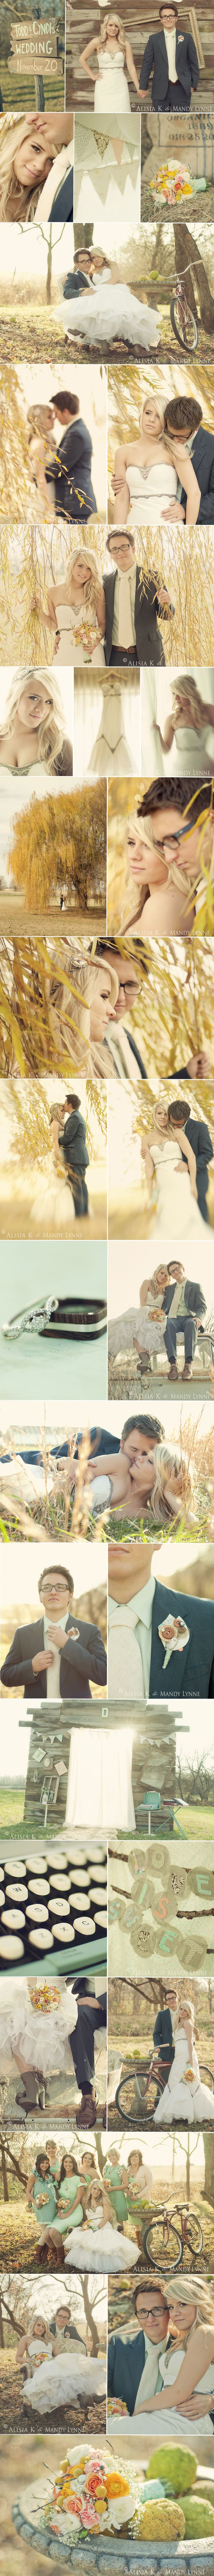 Love vintage styled weddings!